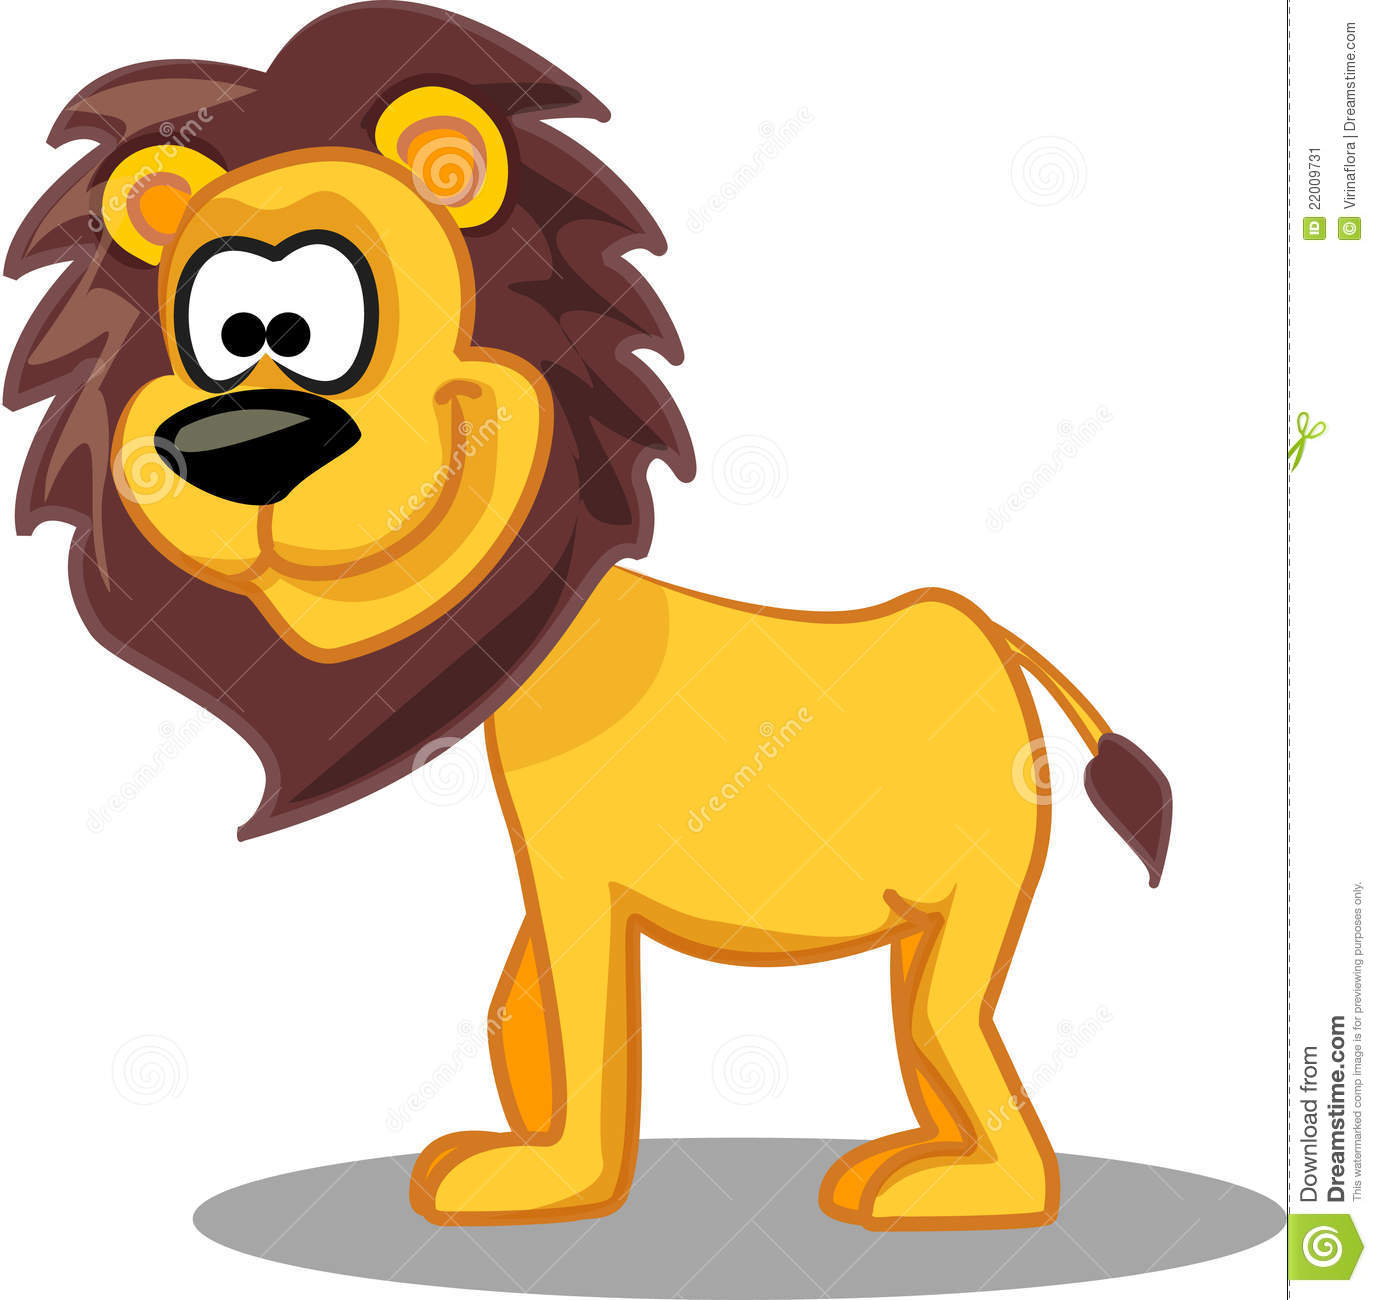 Cartoon lion, vector illustration picture for your design.